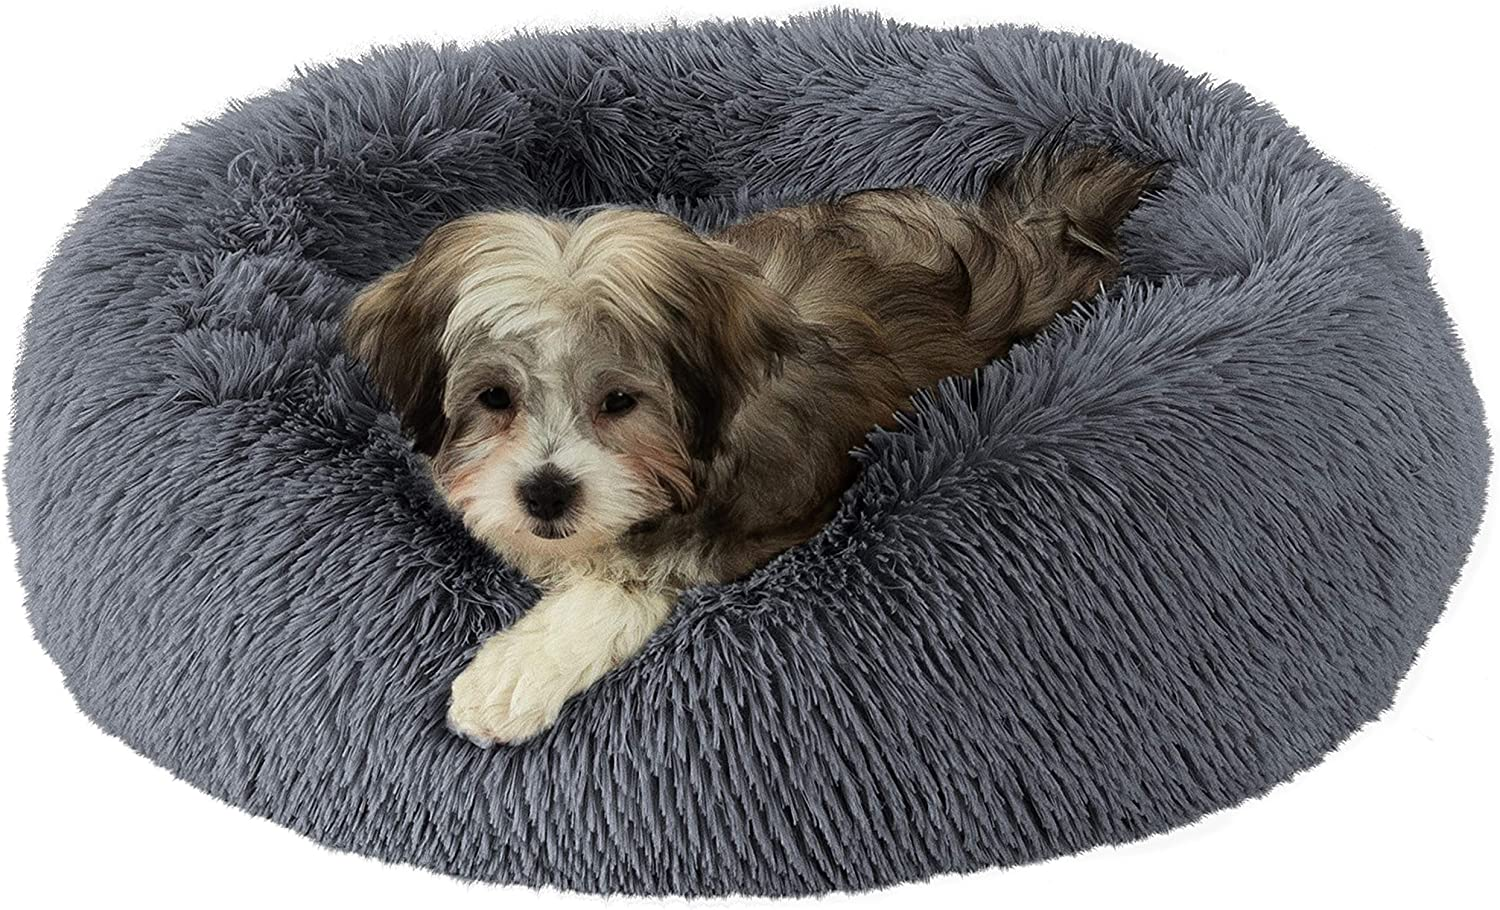 GM PET SUPPLIES Donut Cuddler Dog Orthopedic SEAL limited product High material Calming Round Bed -